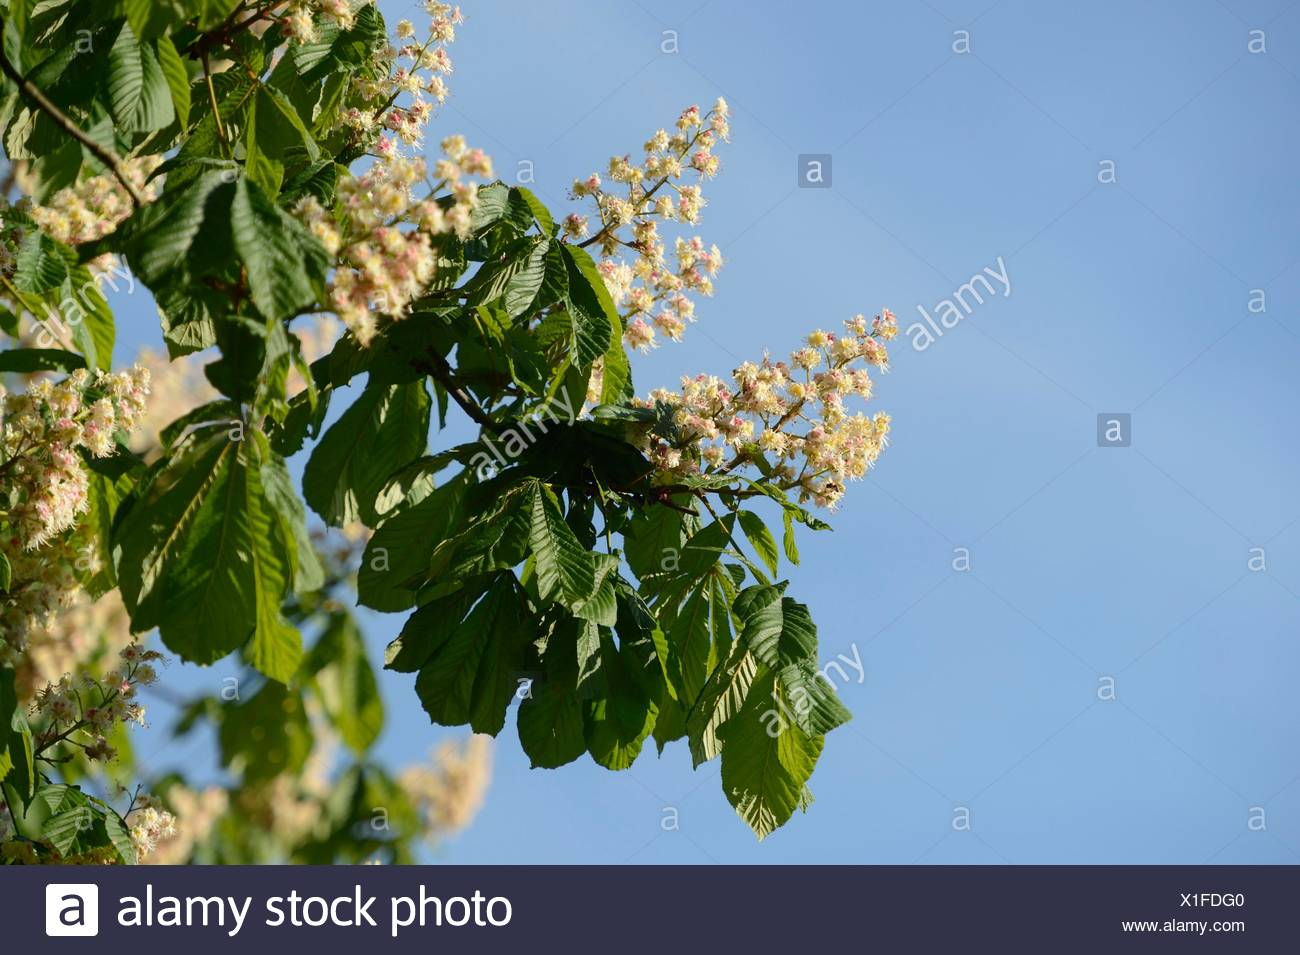 Conker tree blossoms - Stock Image